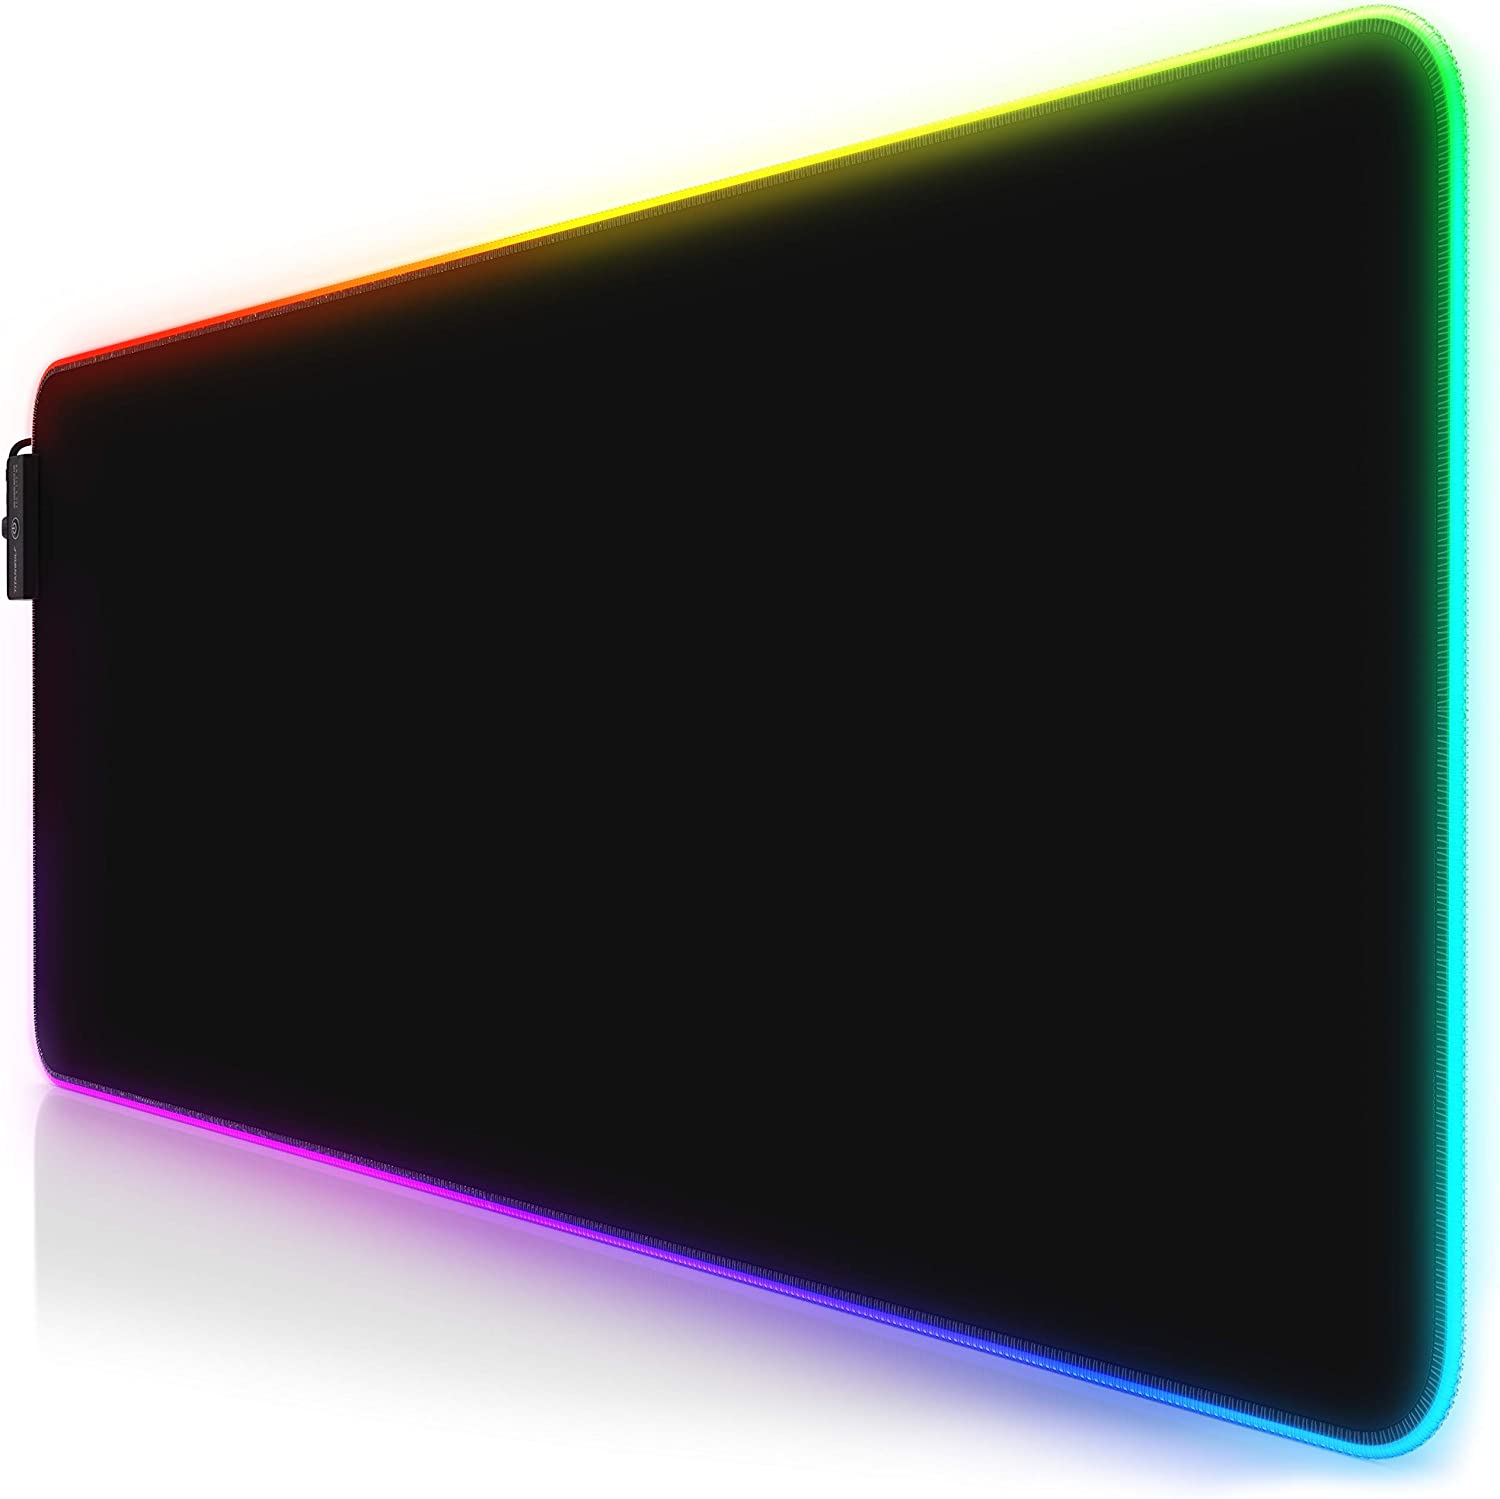 800x300 mm Computer Keyboard Mice Mat for Macbook PC Non-Slip Rubber Base XXXL Extended Large LED Mousepad Black 11 Multi colors and effect modes TITANWOLF XXL RGB Gaming Mouse Mat Pad